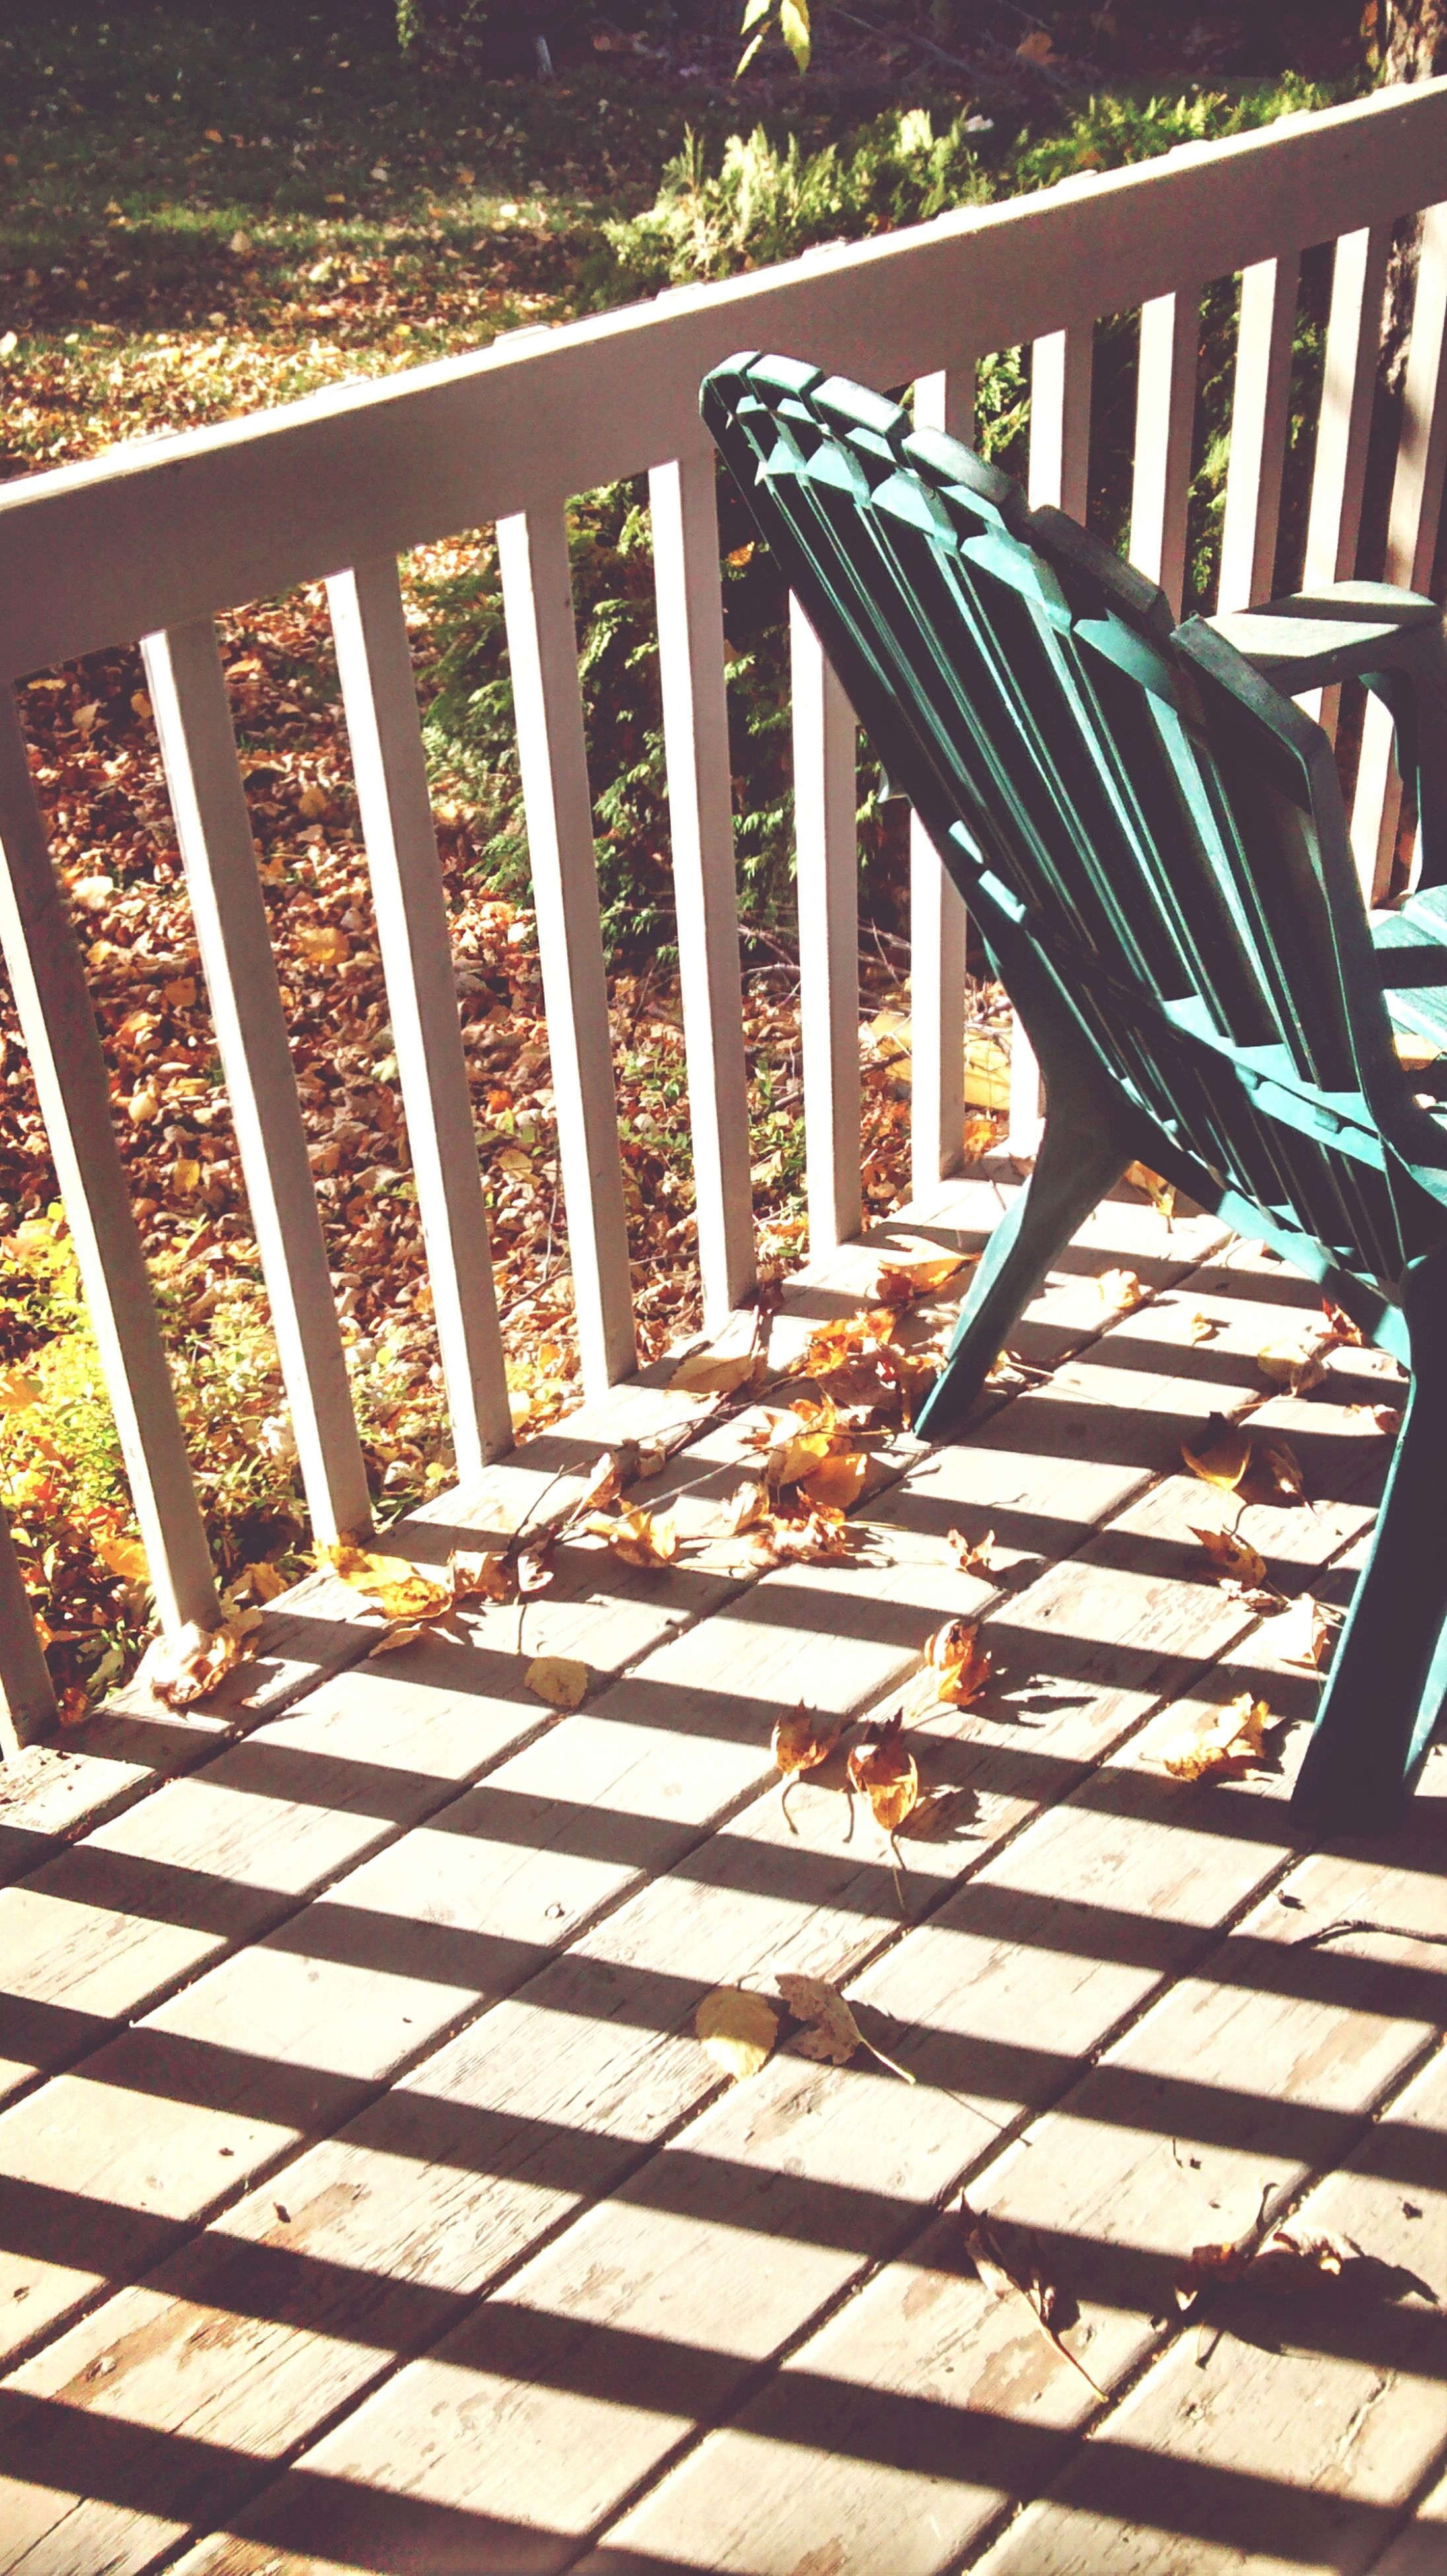 railing, shadow, sunlight, built structure, high angle view, steps, wood - material, empty, pattern, steps and staircases, the way forward, architecture, staircase, park - man made space, no people, day, in a row, walkway, metal, outdoors